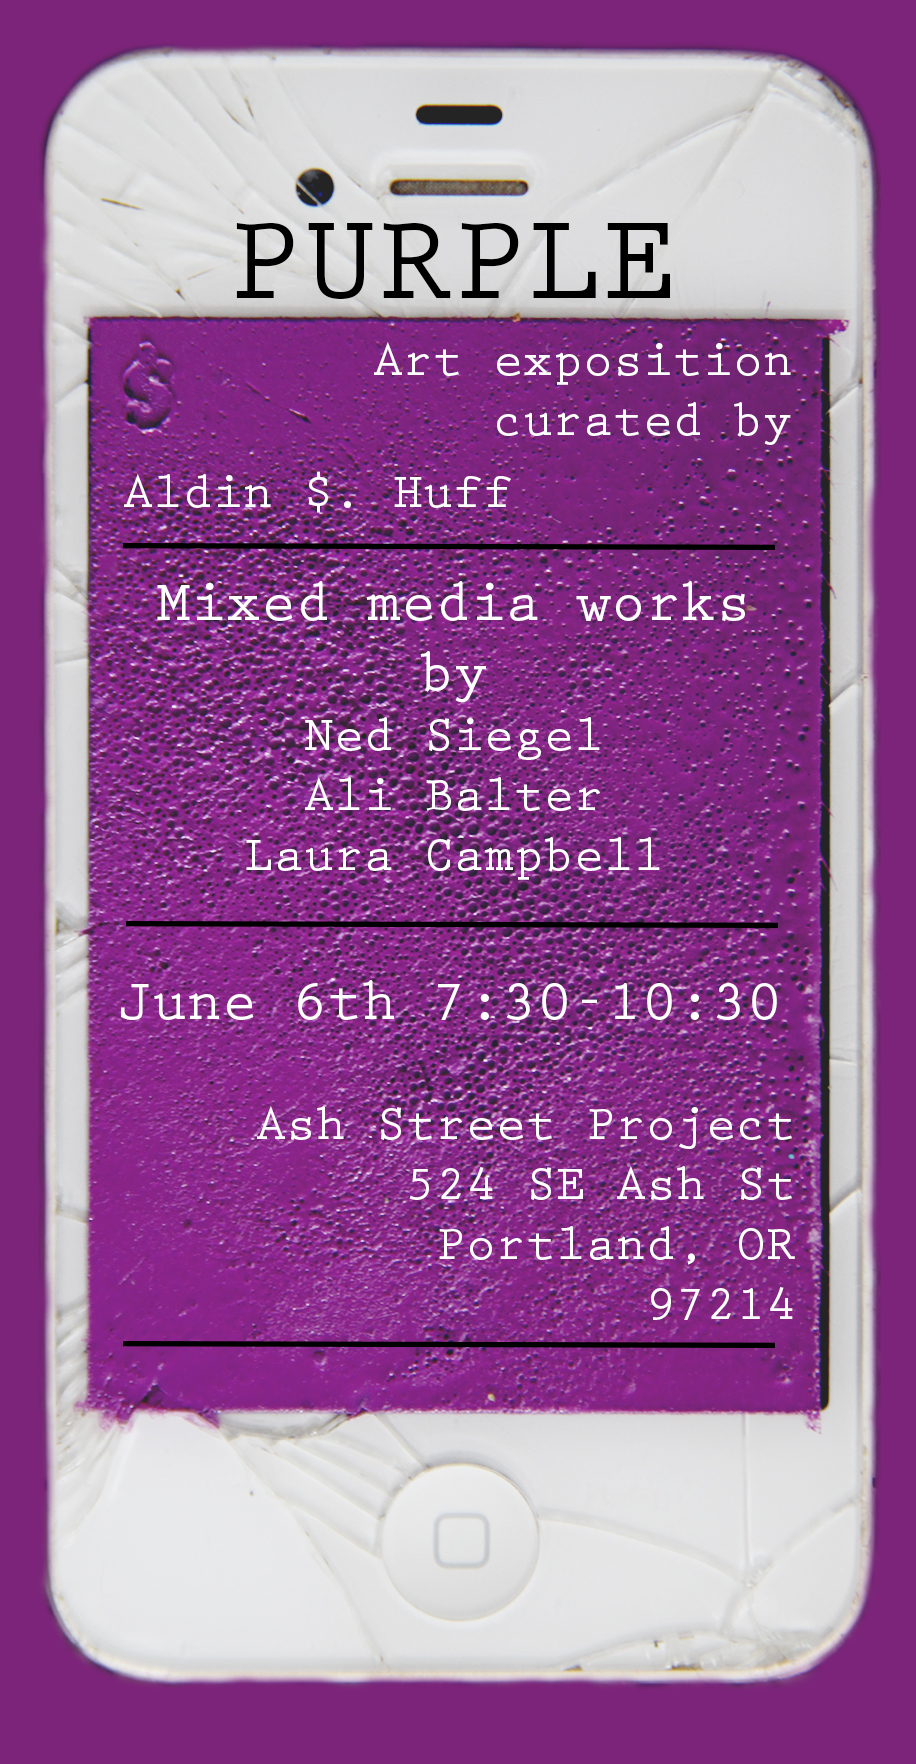 Current Exhibit: Purple curated by Aldin Huff